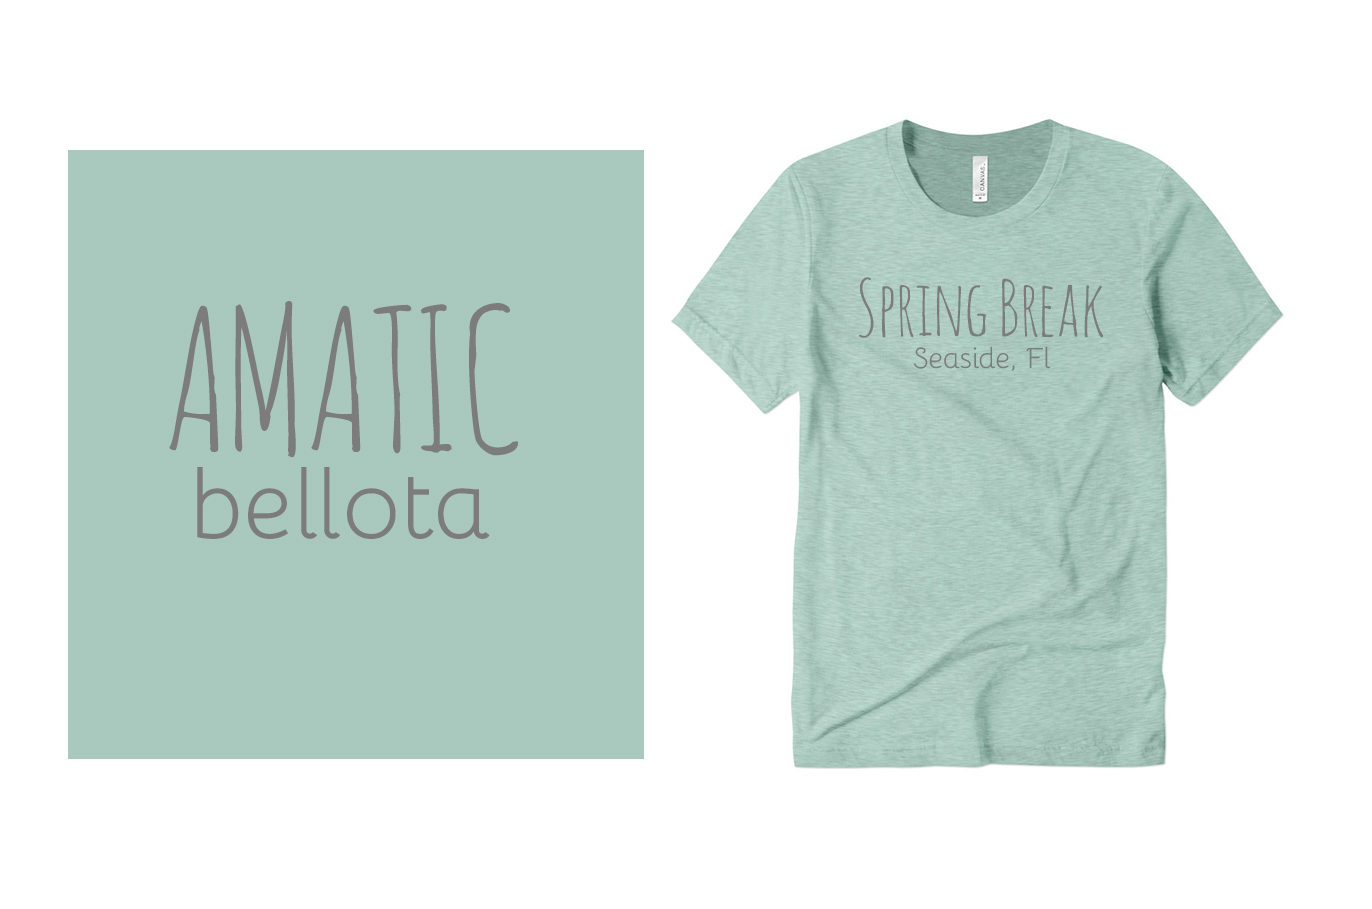 Amatic and Bellota Fonts on Custom T-Shirts